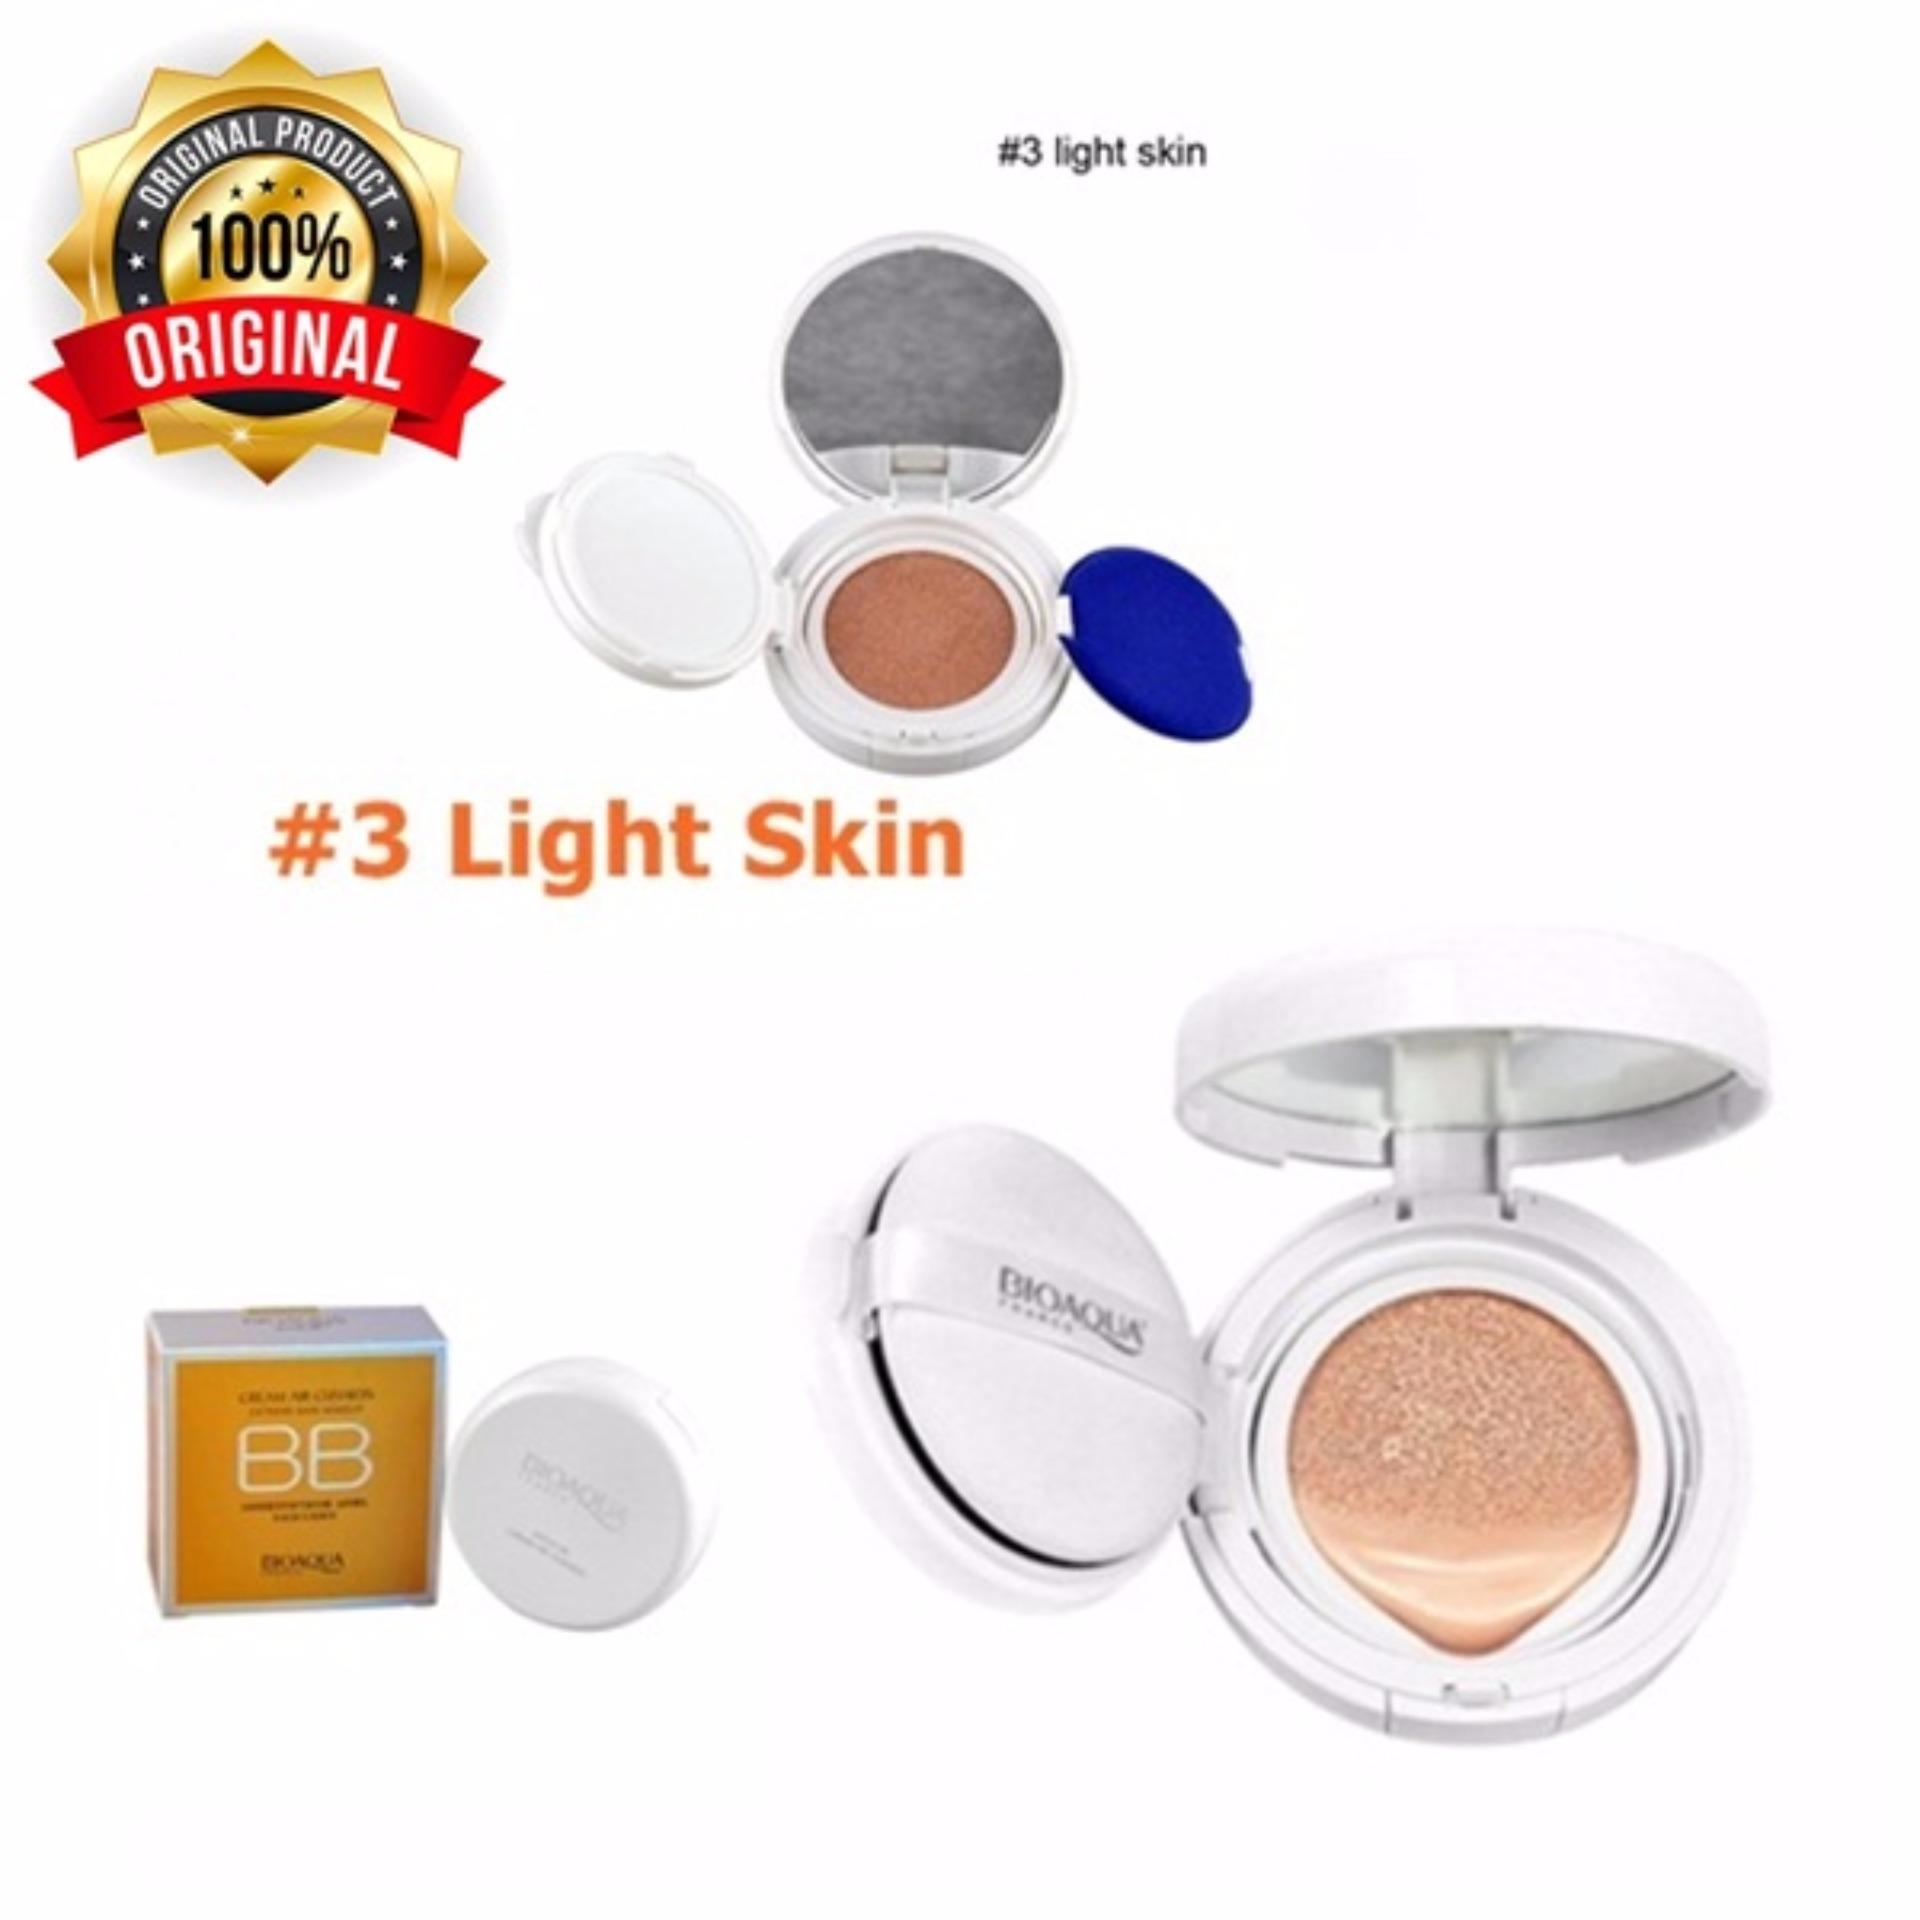 Diskon 03 Light Skin Bioaqua Bb Cream Air Cushion Original Branded